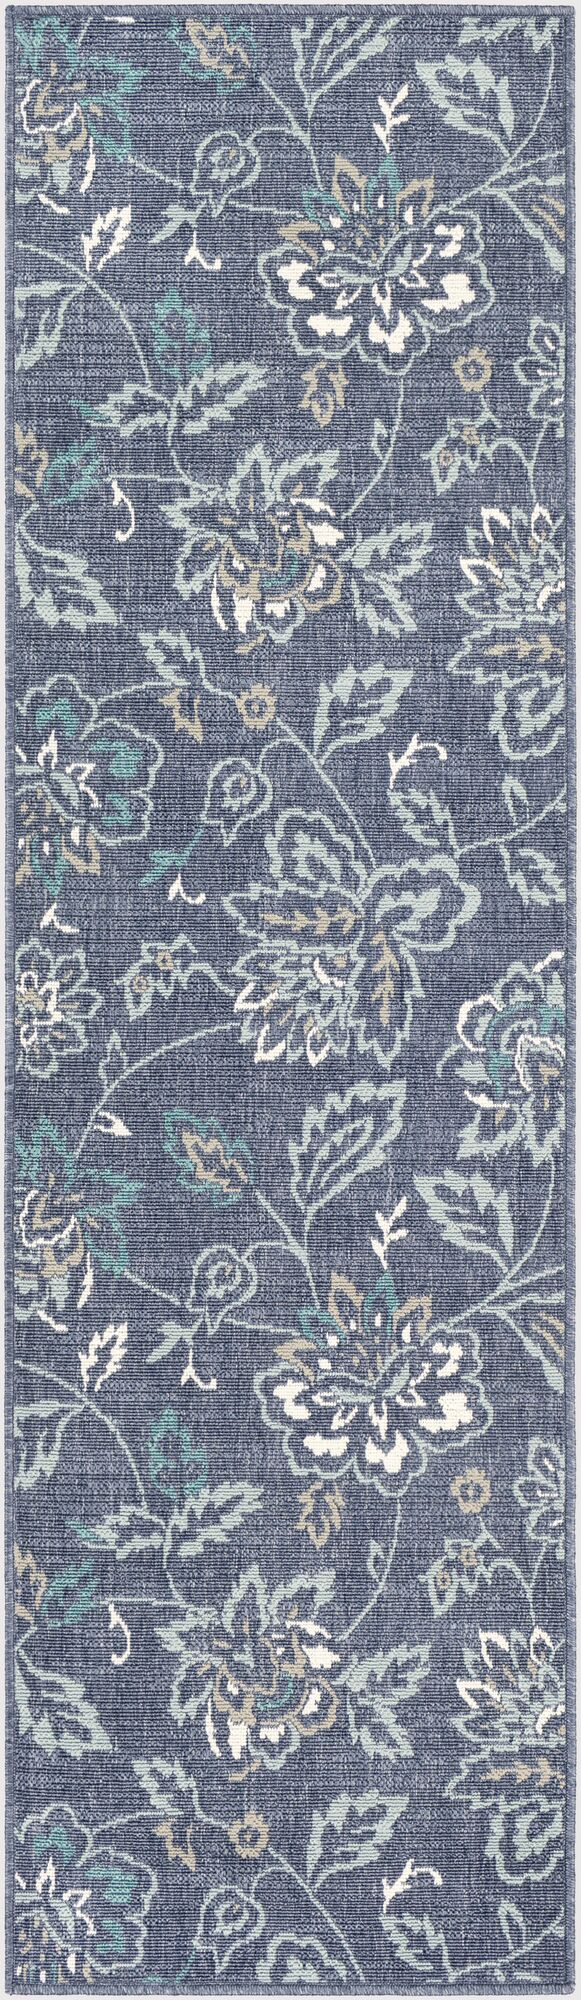 Pearce Floral Charcoal/Aqua Indoor/Outdoor Area Rug Rug Size: Runner 2'3